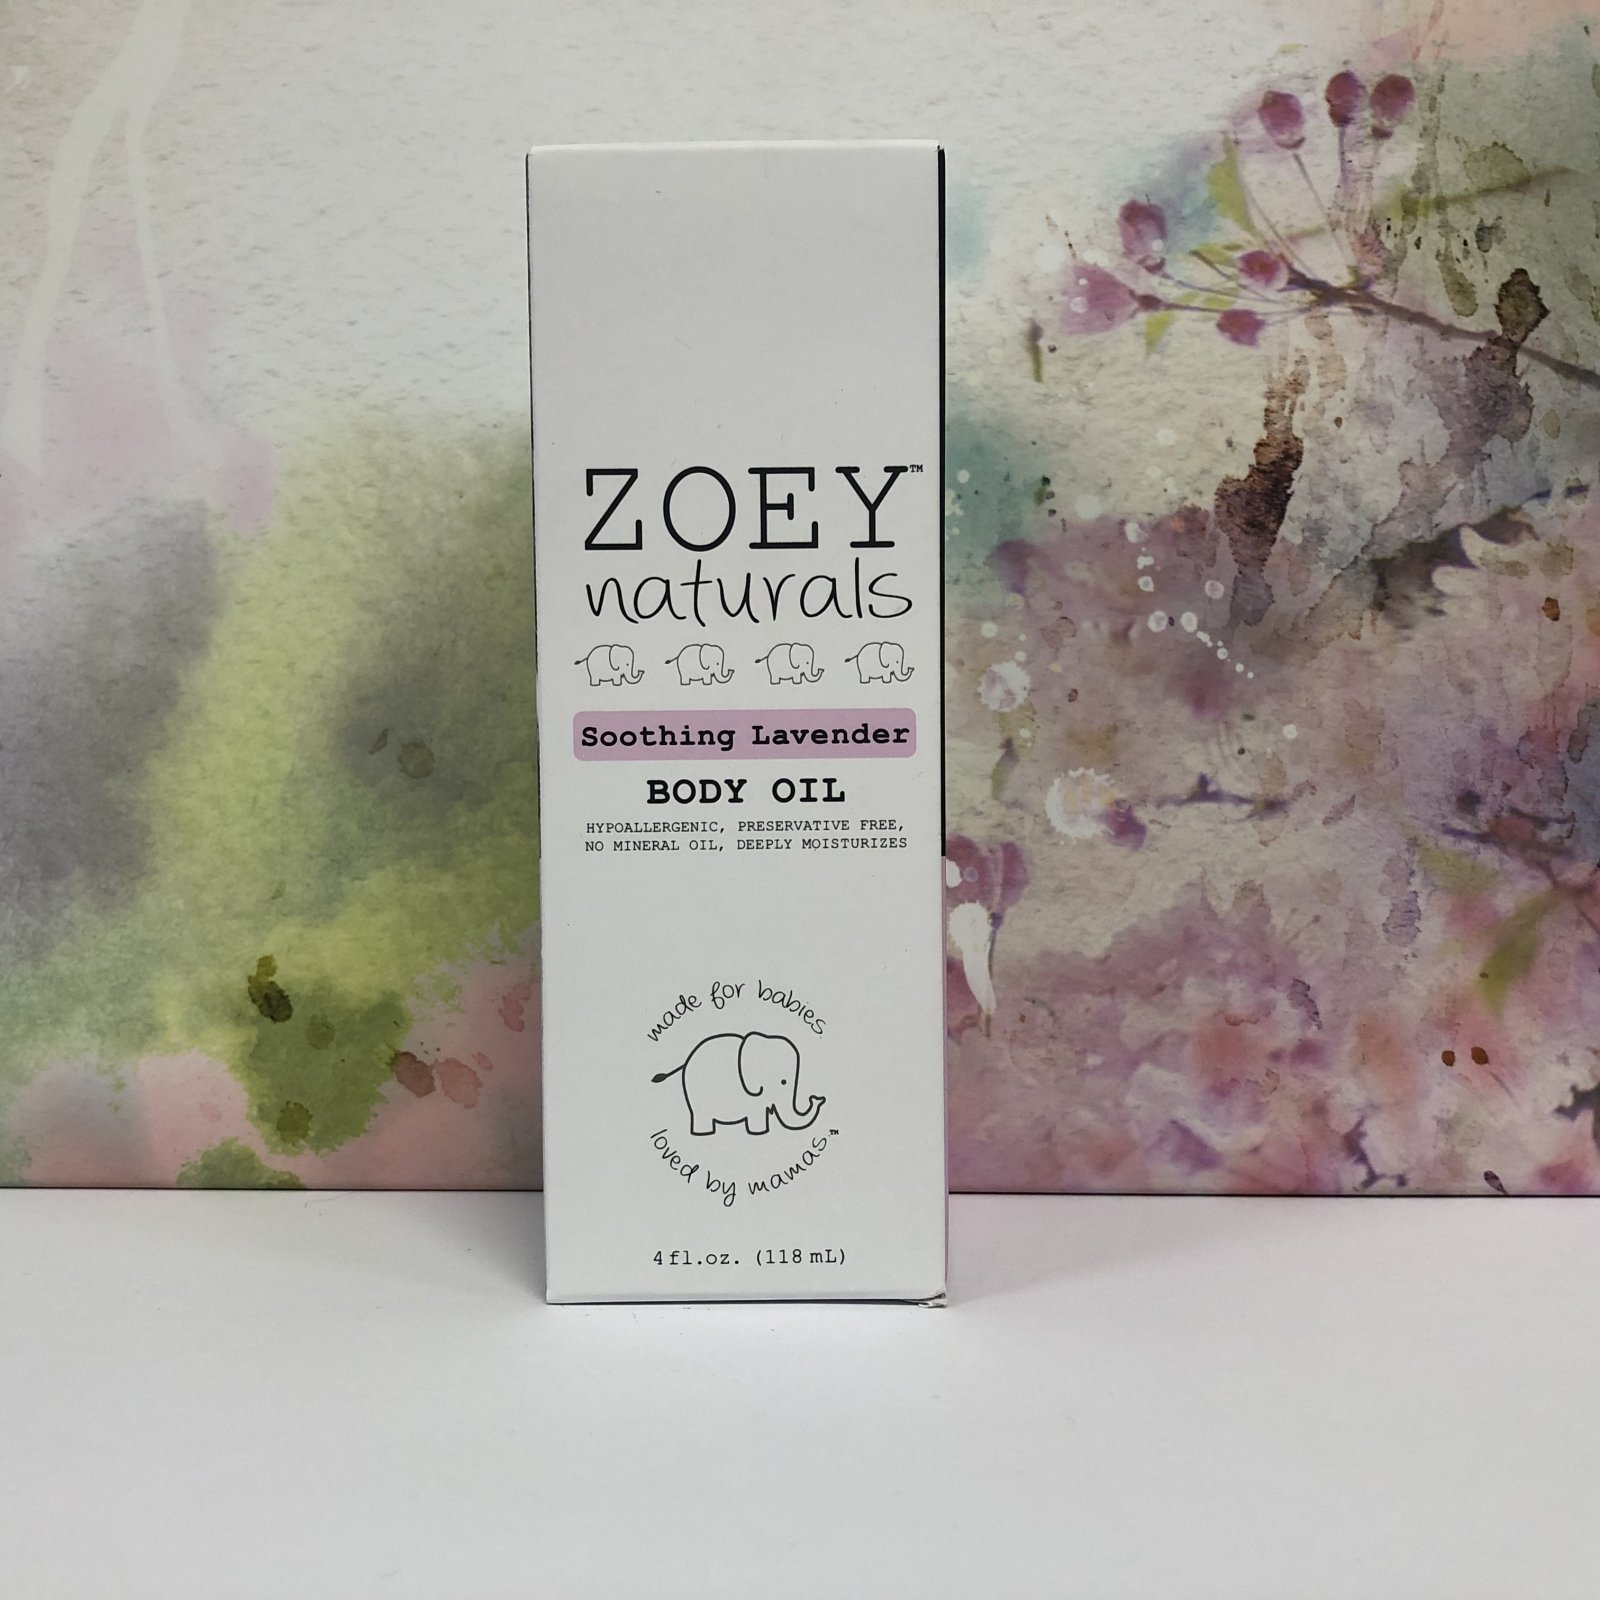 Zoey Naturals Soothing Lavender Body Oil